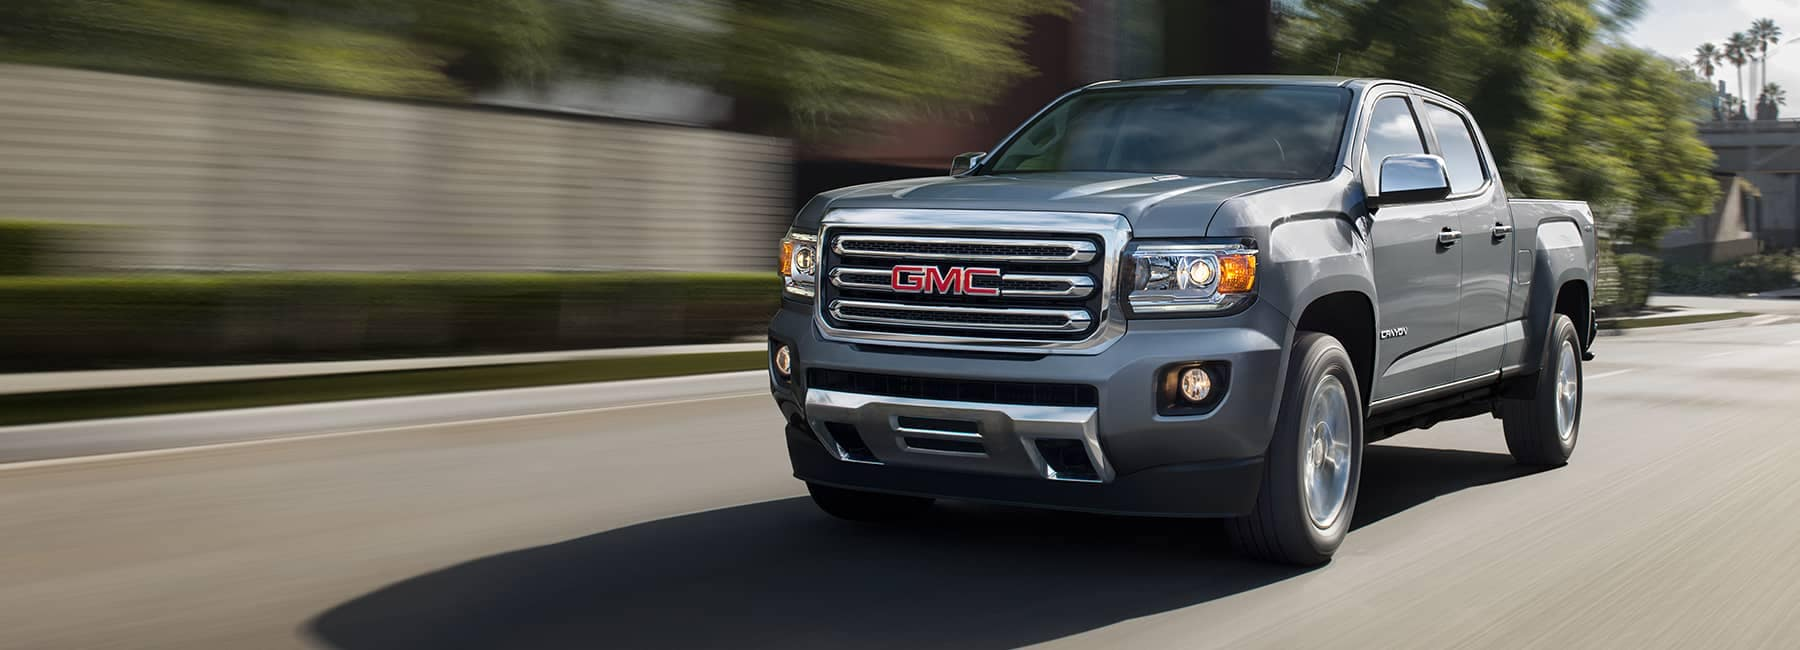 Grey 2020 GMC Canyon driving down a city street